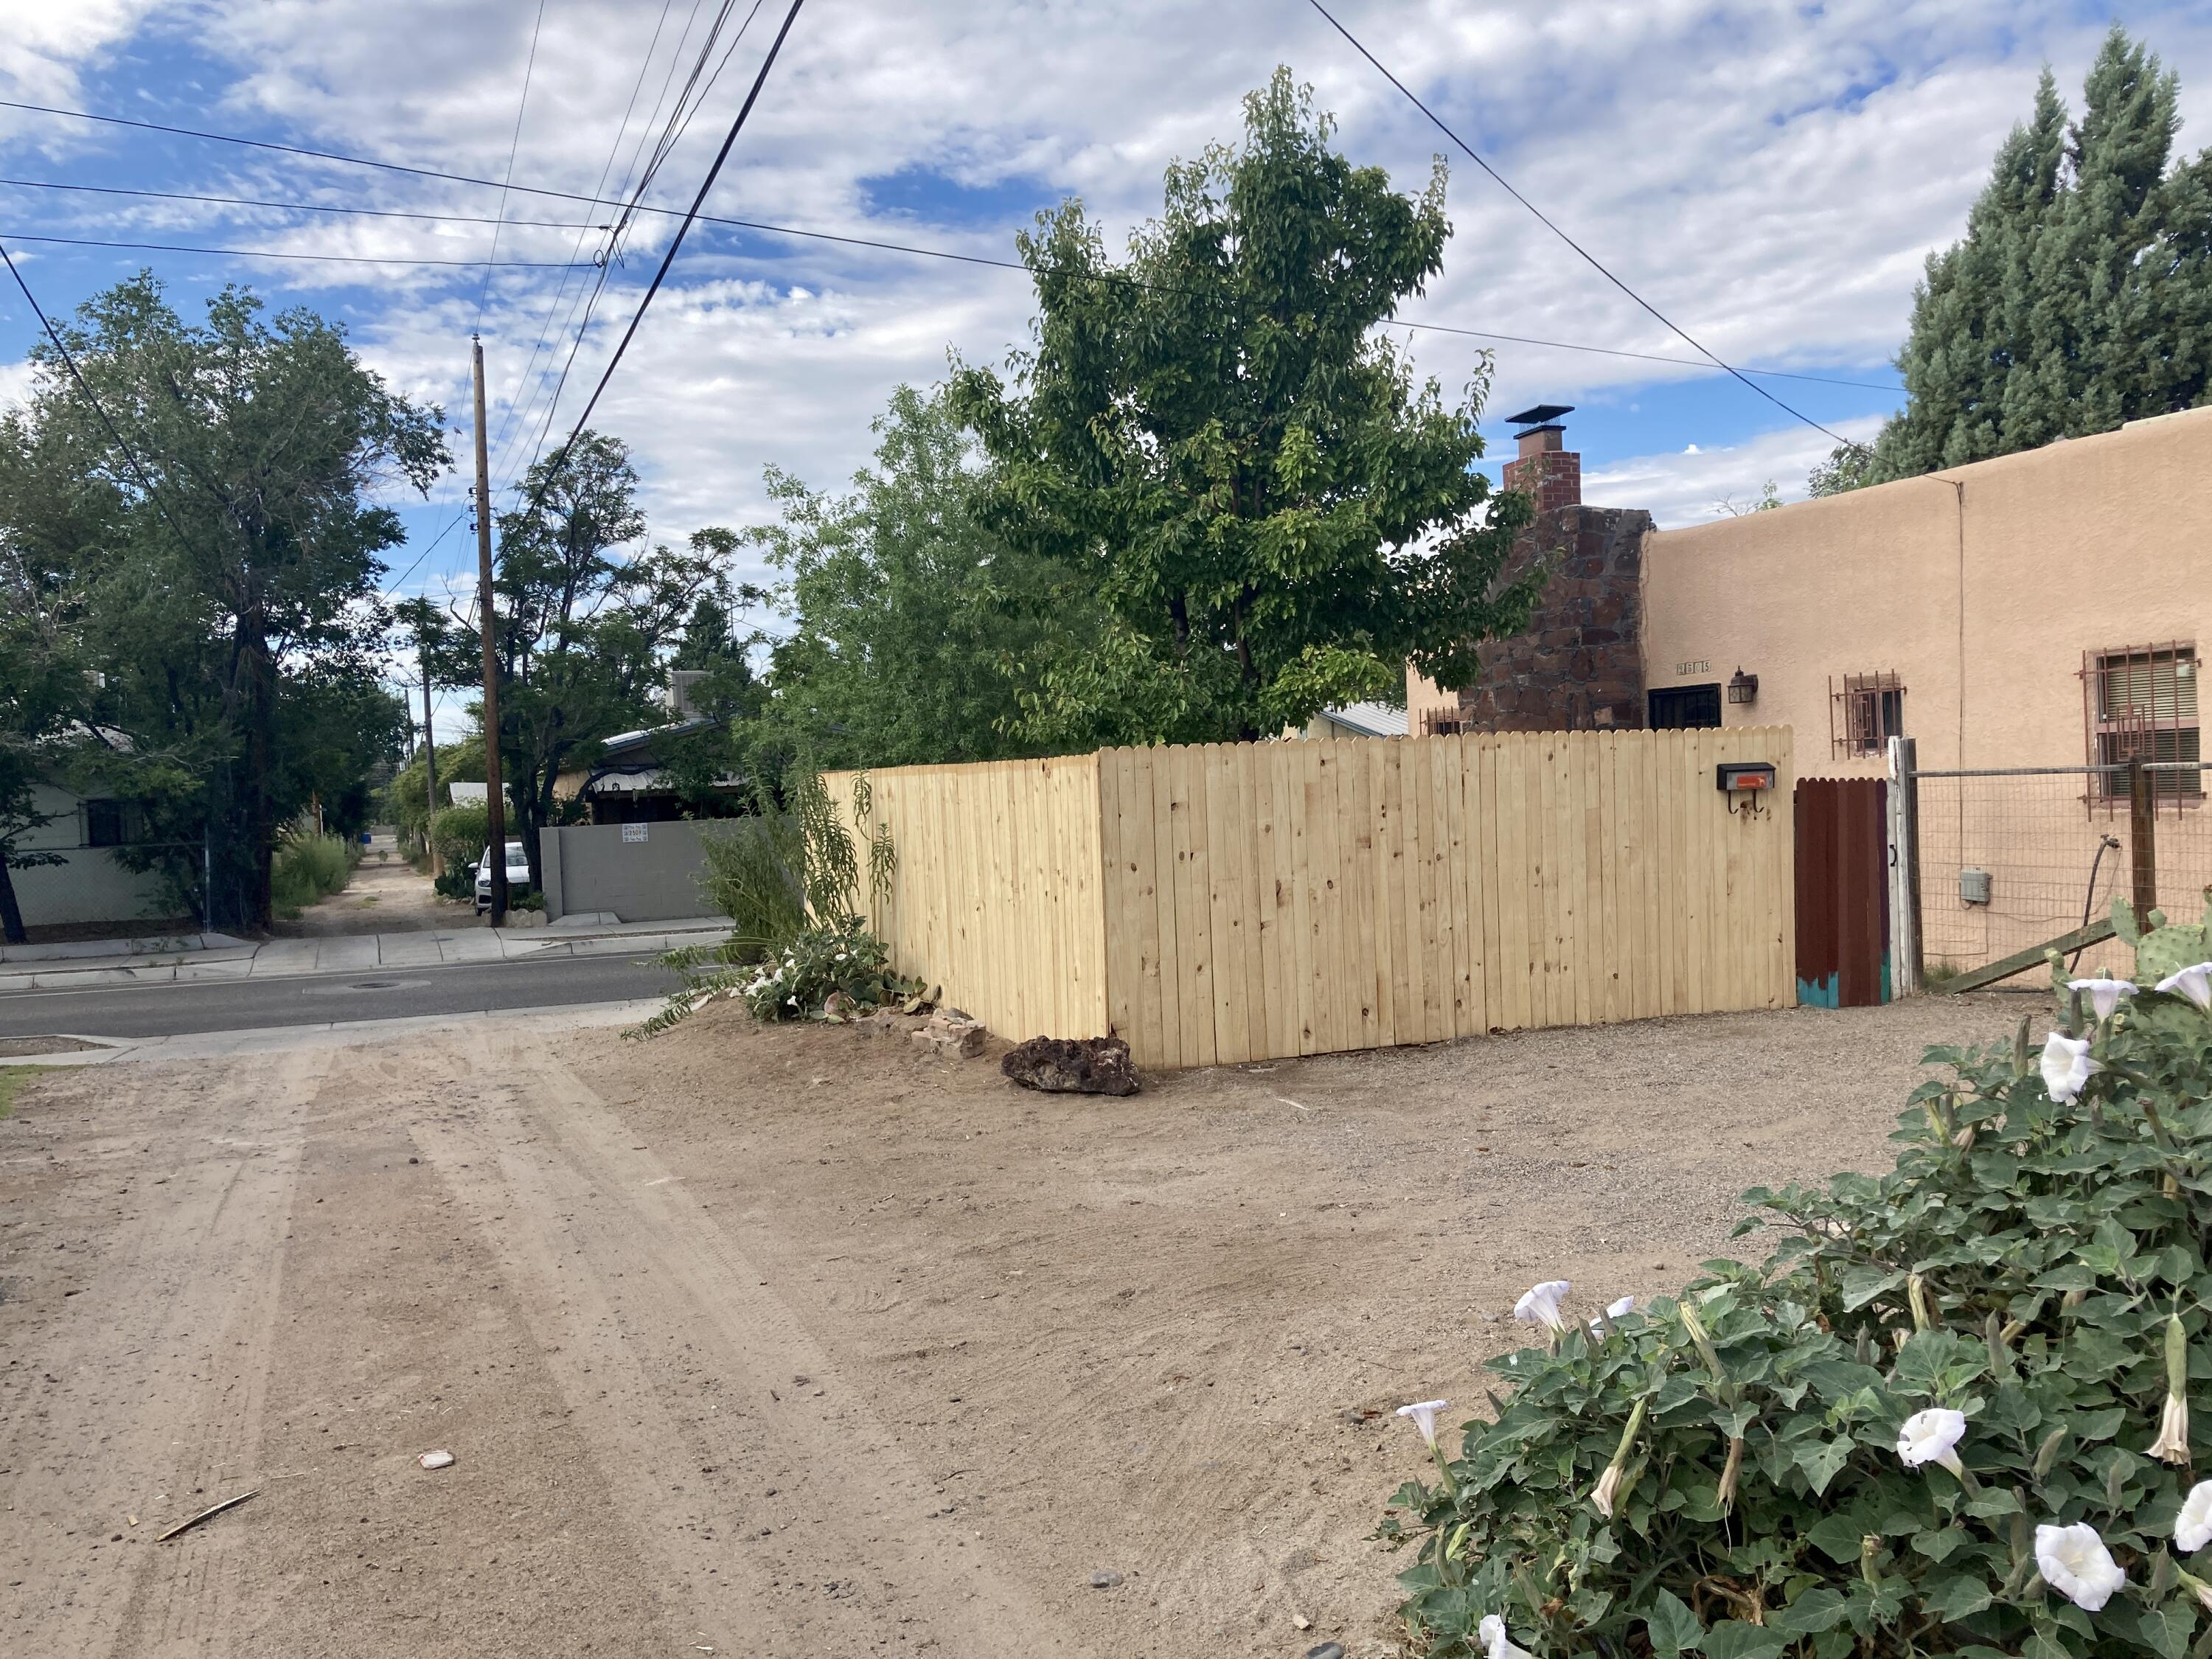 Just 3 blocks from UNM.  Charm and warmth in this 2 bedroom Pueblo with  extra space (possible third bedroom.) There is a detached old garage used as a large storage room.  Cute kitchen with checkered flooring.  Separate laundry room with washer and dryer. Full bath, fireplace, and front and back yards.  Off street parking for two cars.  Fenced and walled for privacy.  Convenient , walkable location.